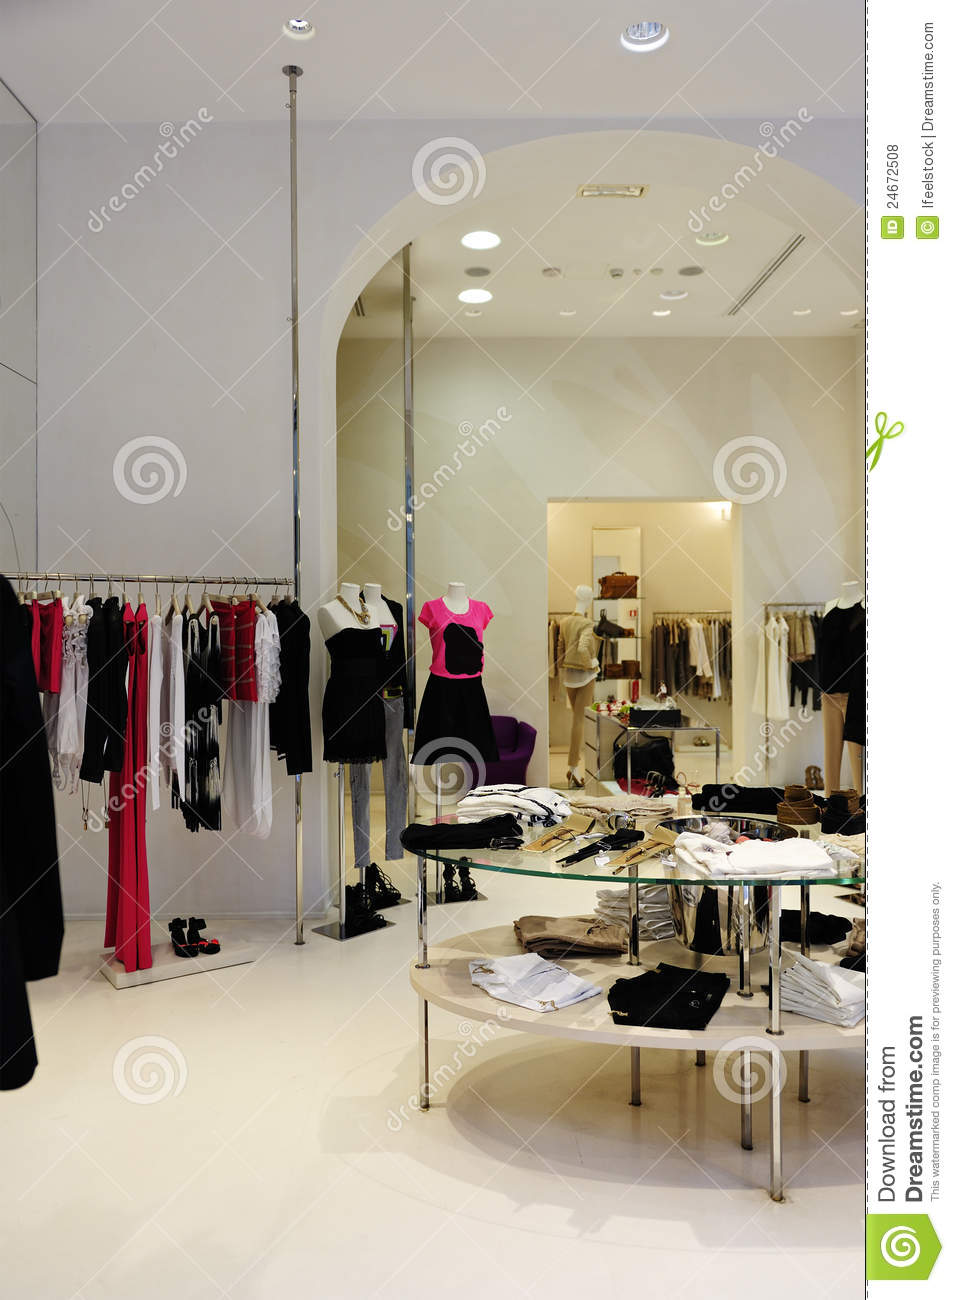 Small retail store designs joy studio design gallery best design for Fashion retail interior design